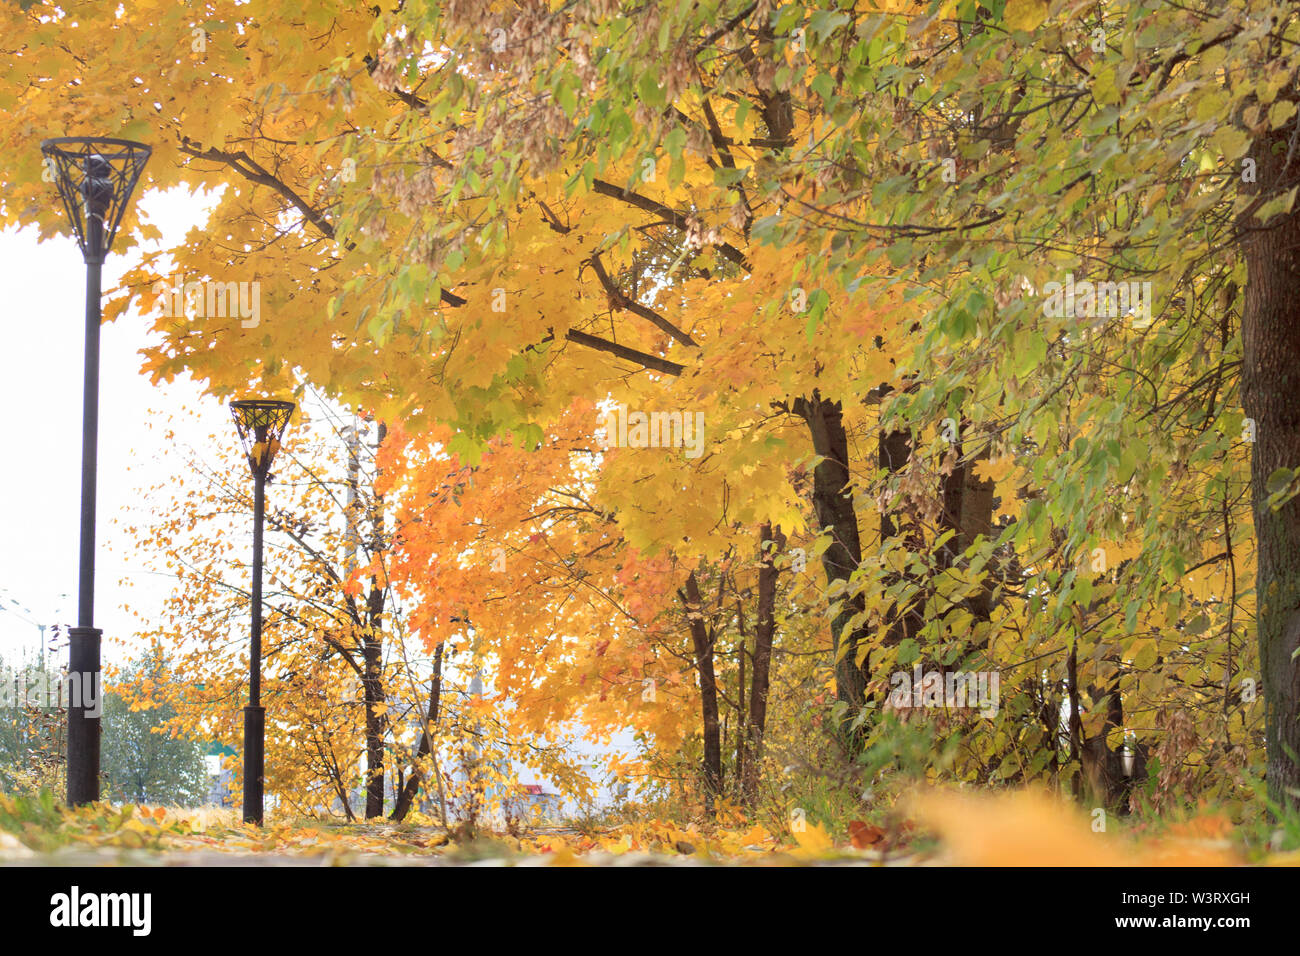 Beautiful yellow trees are standing in the autumn park. Falling autumn leaves. Seasons of the year. Live nature. - Stock Image